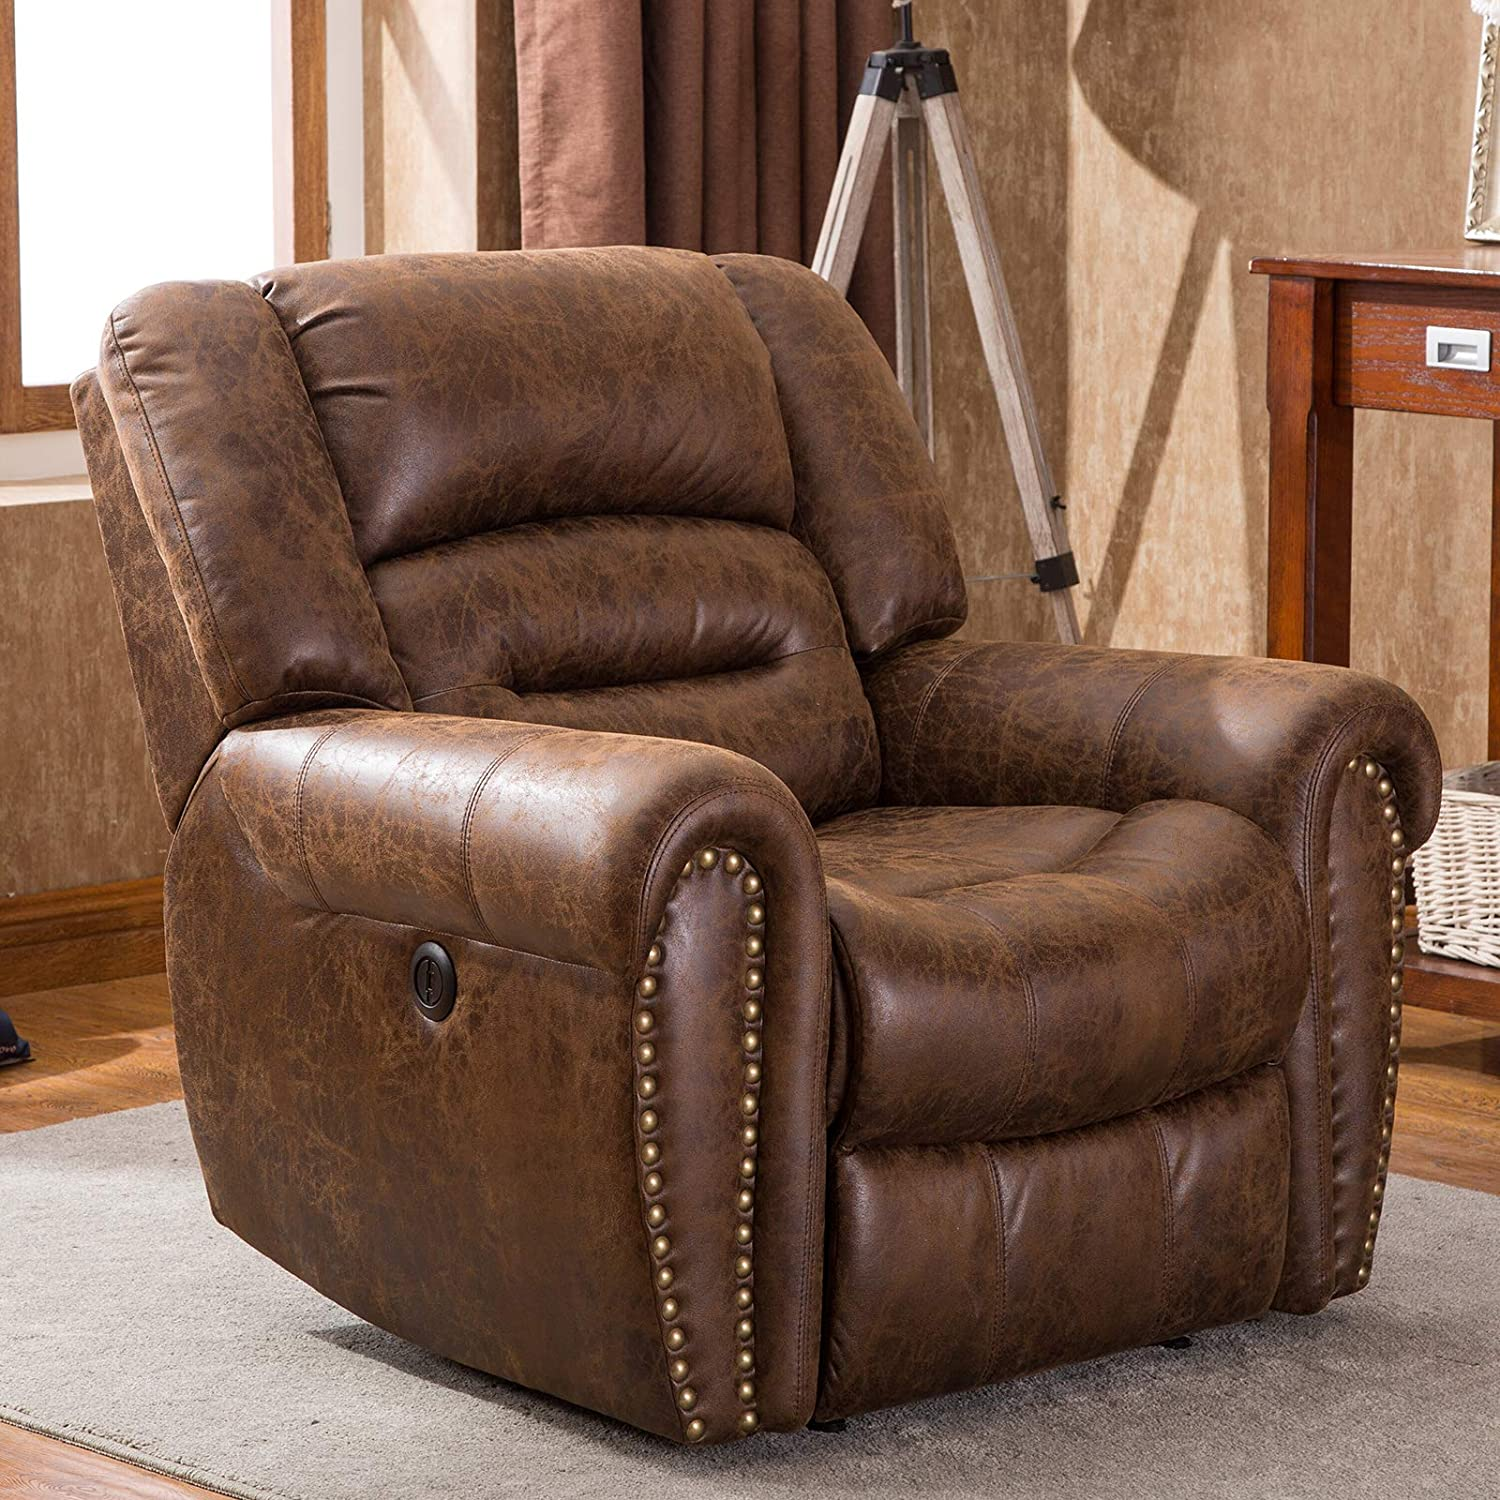 ANJ Electric Recliner Chair WBreathable Bonded Leather, Classic Single Sofa Home Theater Recliner Seating WUSB Port (Nut Brown)